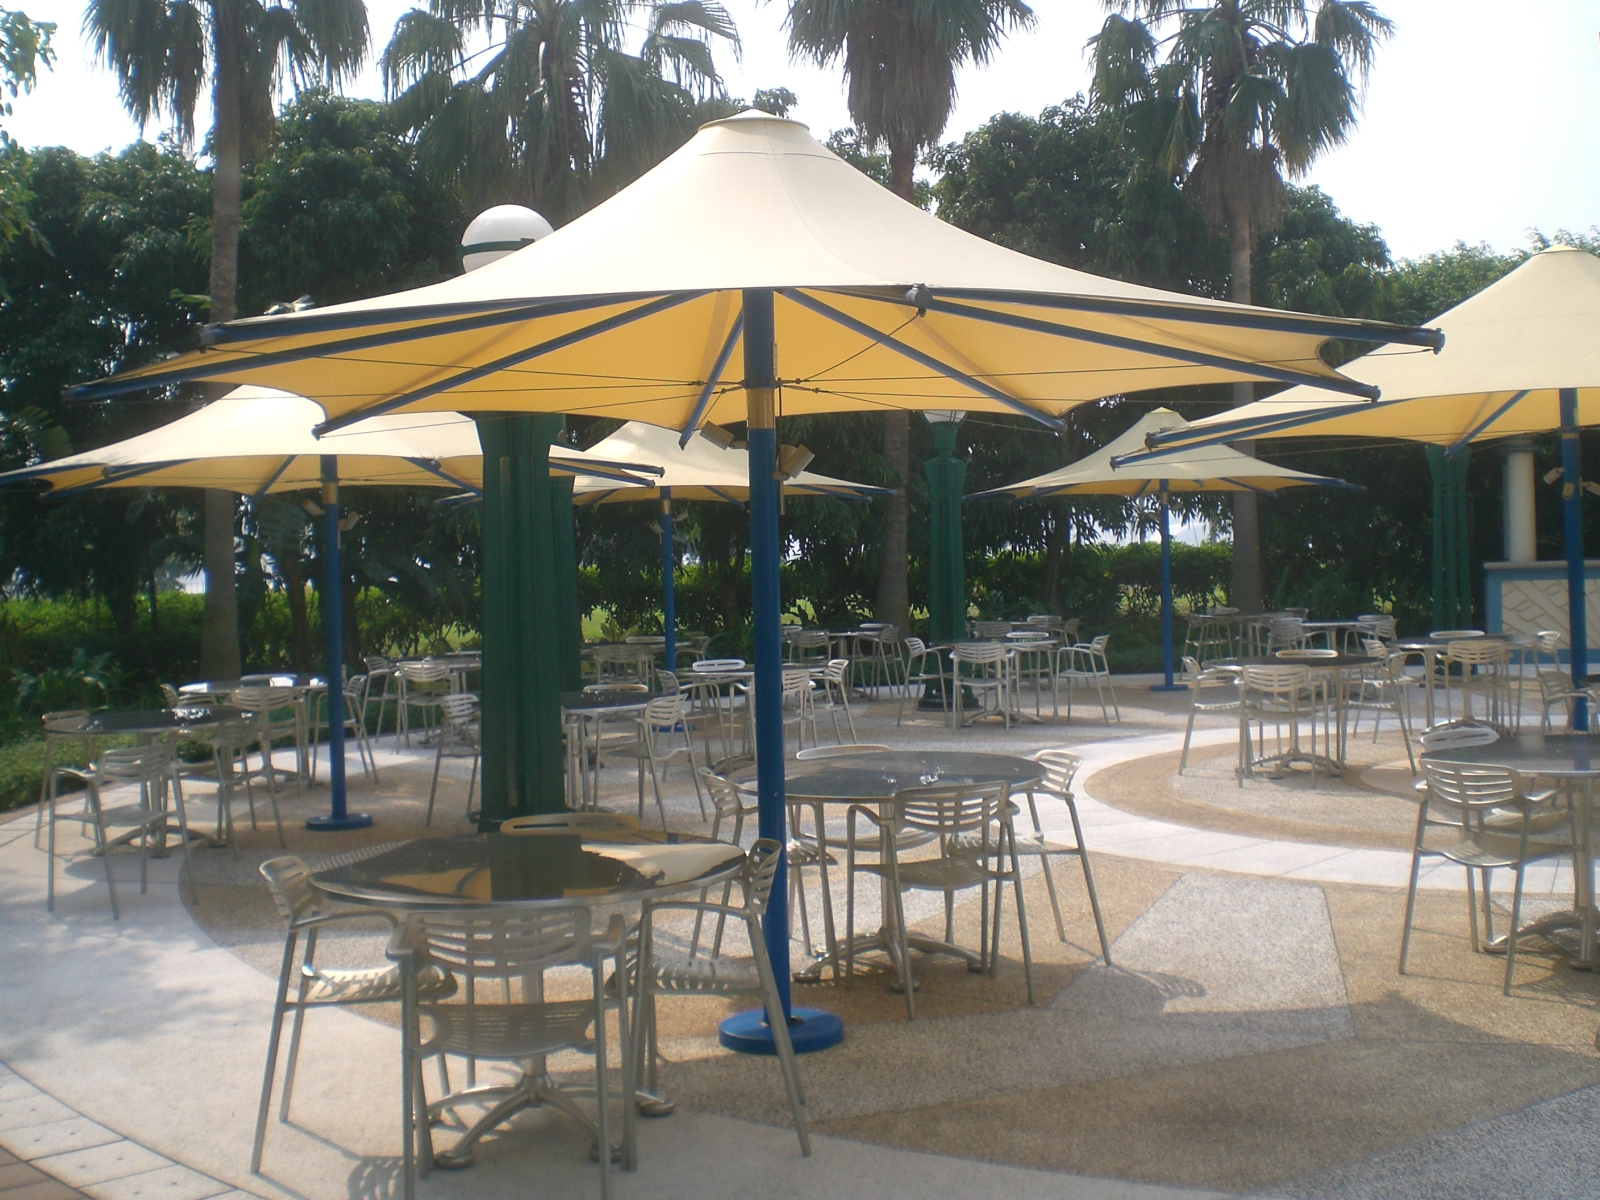 File HK Disney s Hollywood Hotel outdoor sidewalk cafe Umbrella